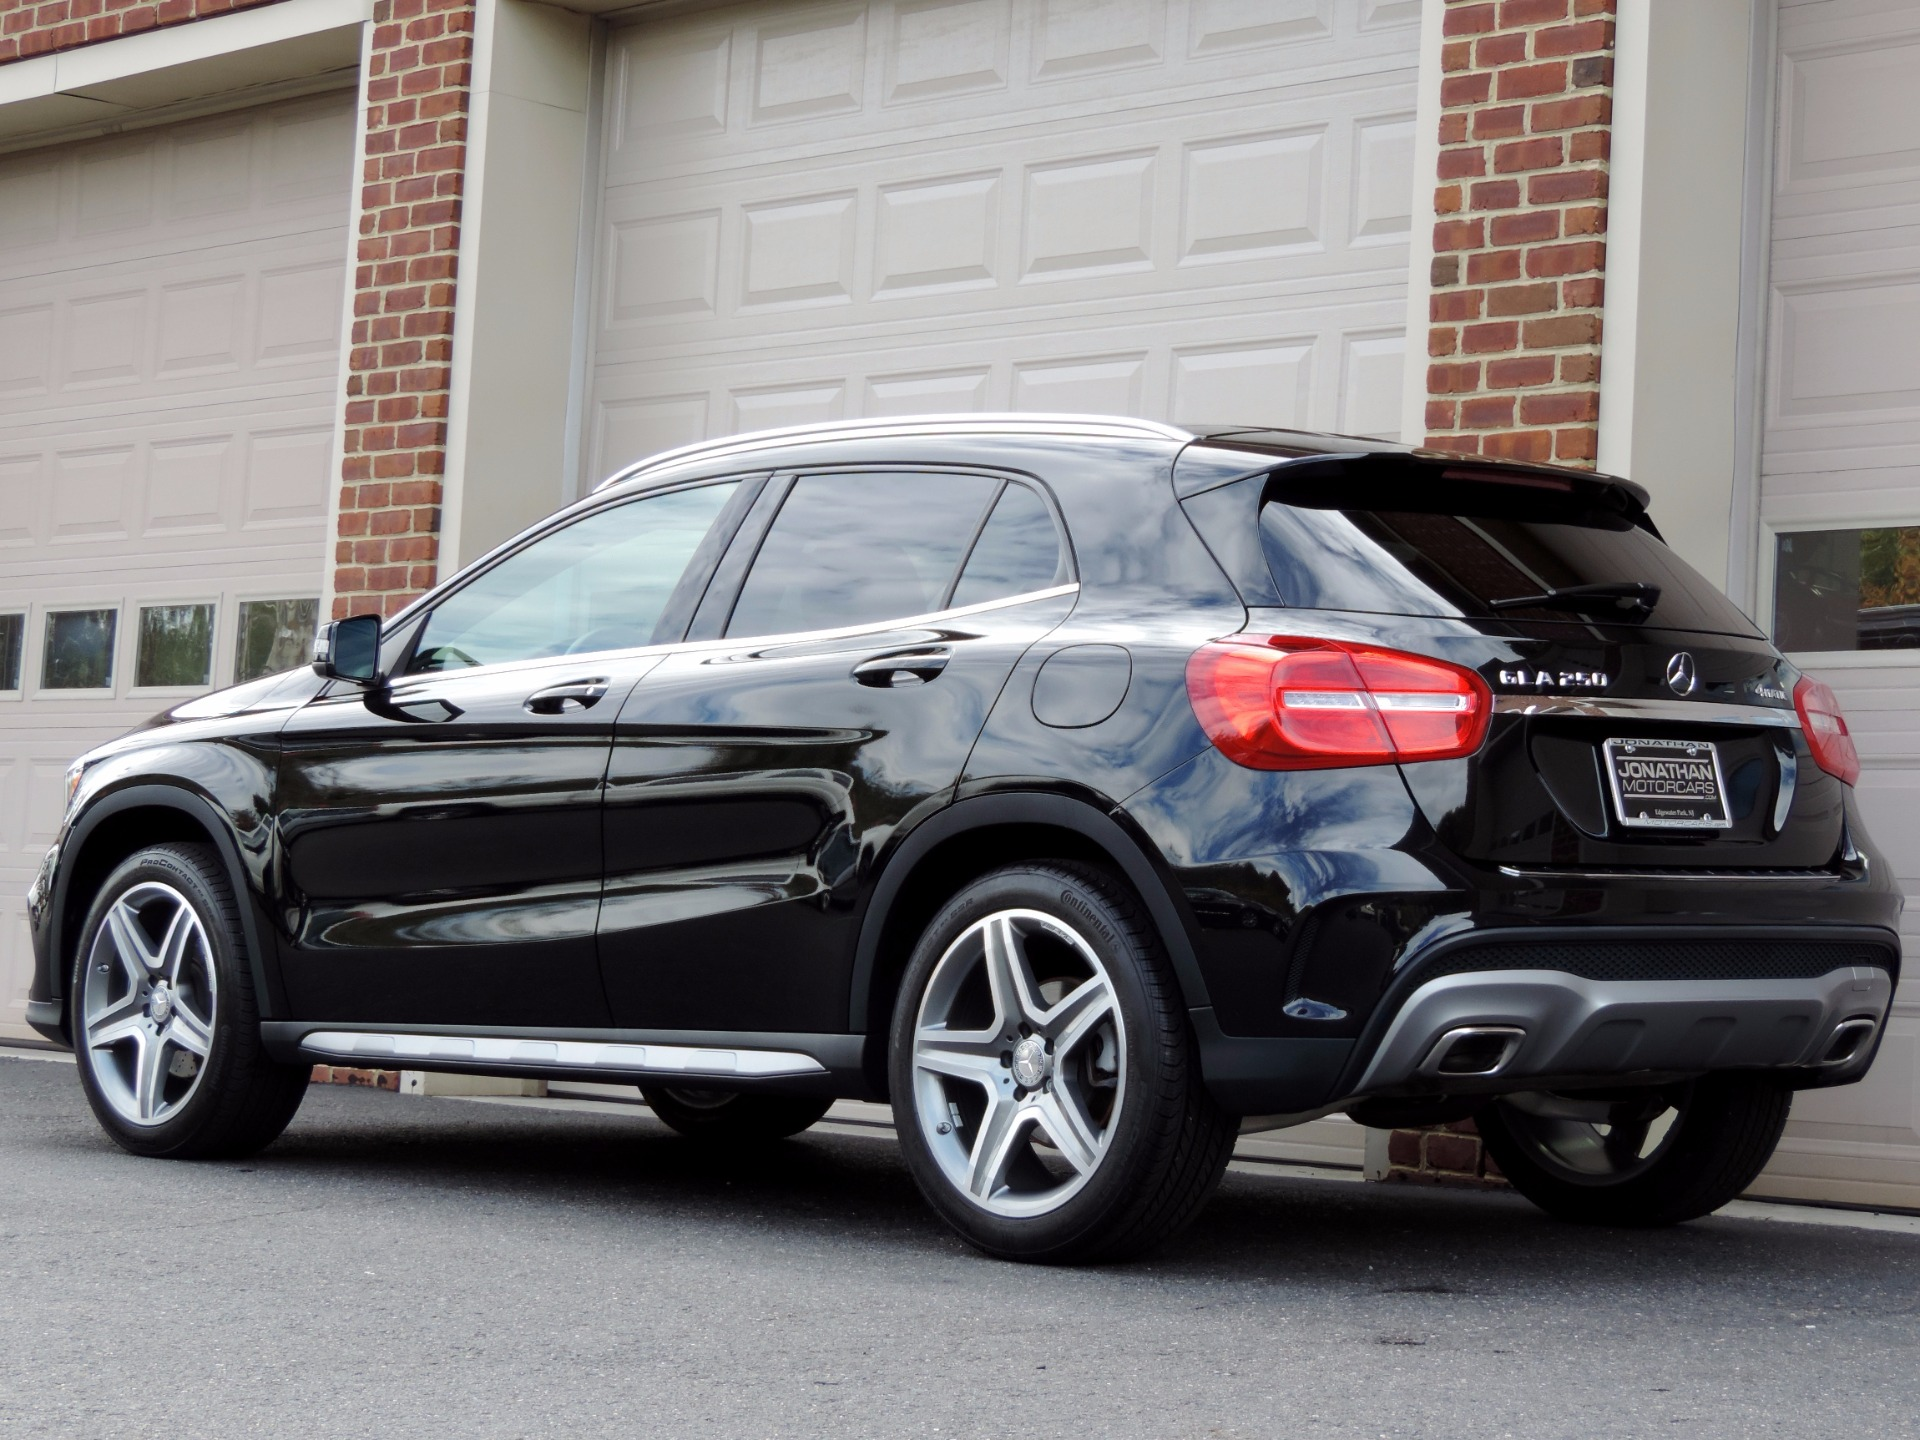 2015 mercedes benz gla gla 250 4matic stock 092522 for for 2015 mercedes benz gla250 4matic for sale